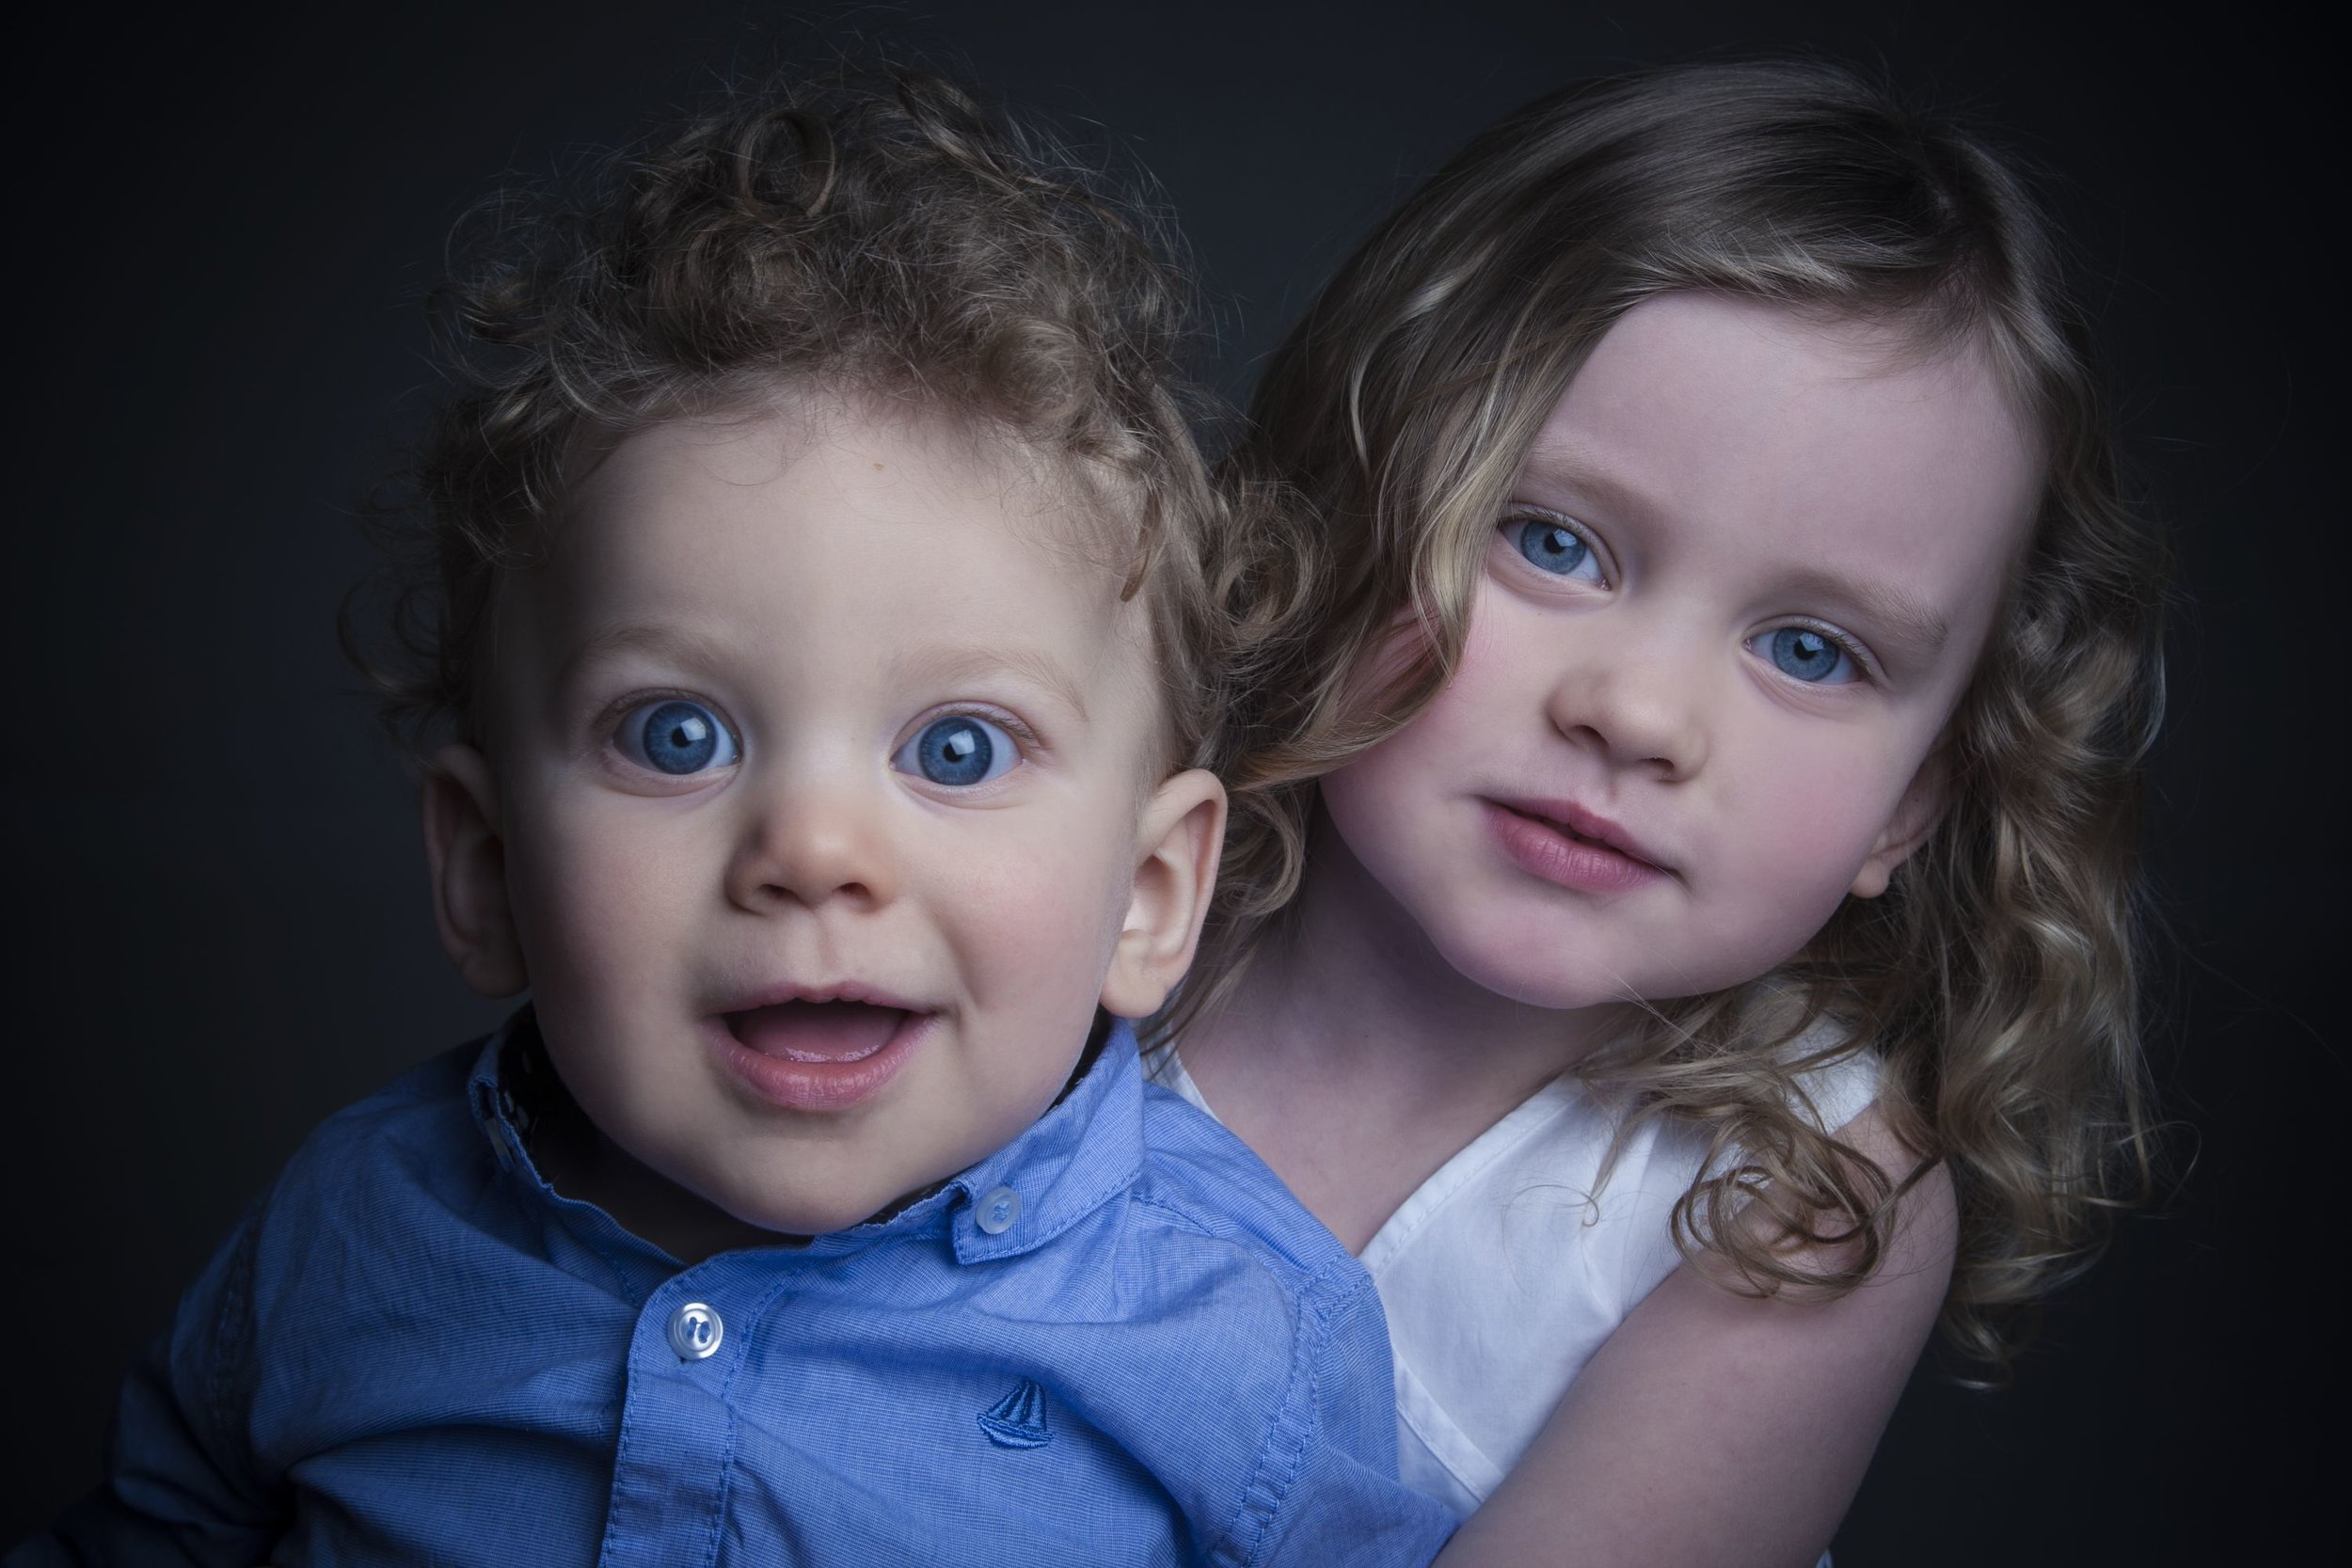 Zigzag-photography-venture-studios-leicester-bump-photos-ideas-portraits-siblings-brother-sister